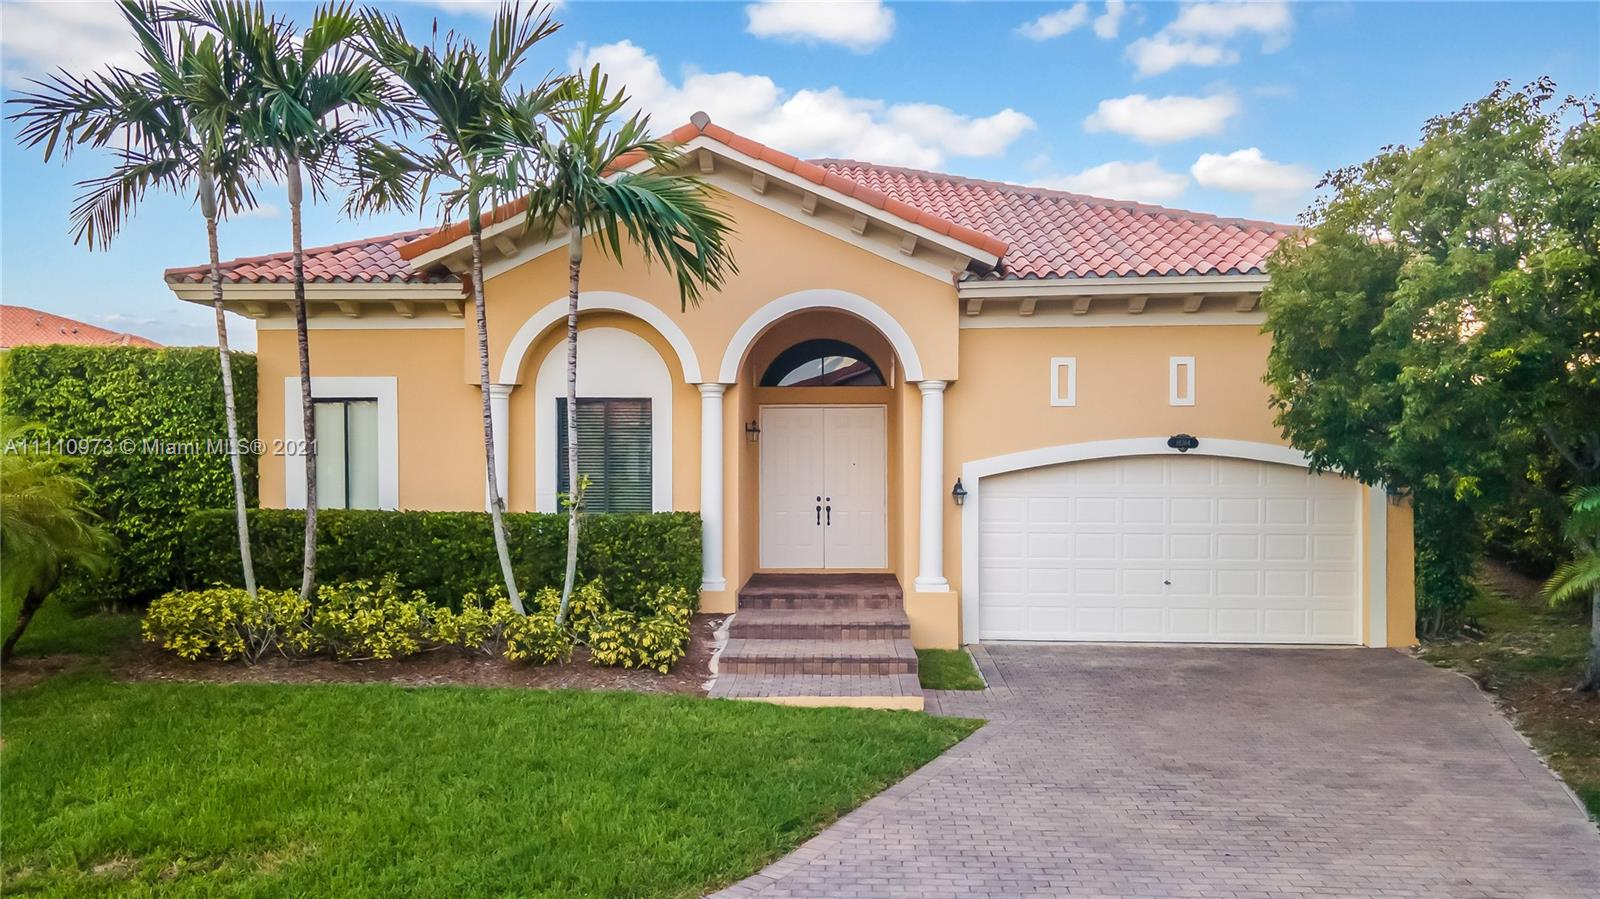 Single Family Home,For Sale,19364 SW 77th Pl, Cutler Bay, Florida 33157,Brickell,realty,broker,condos near me